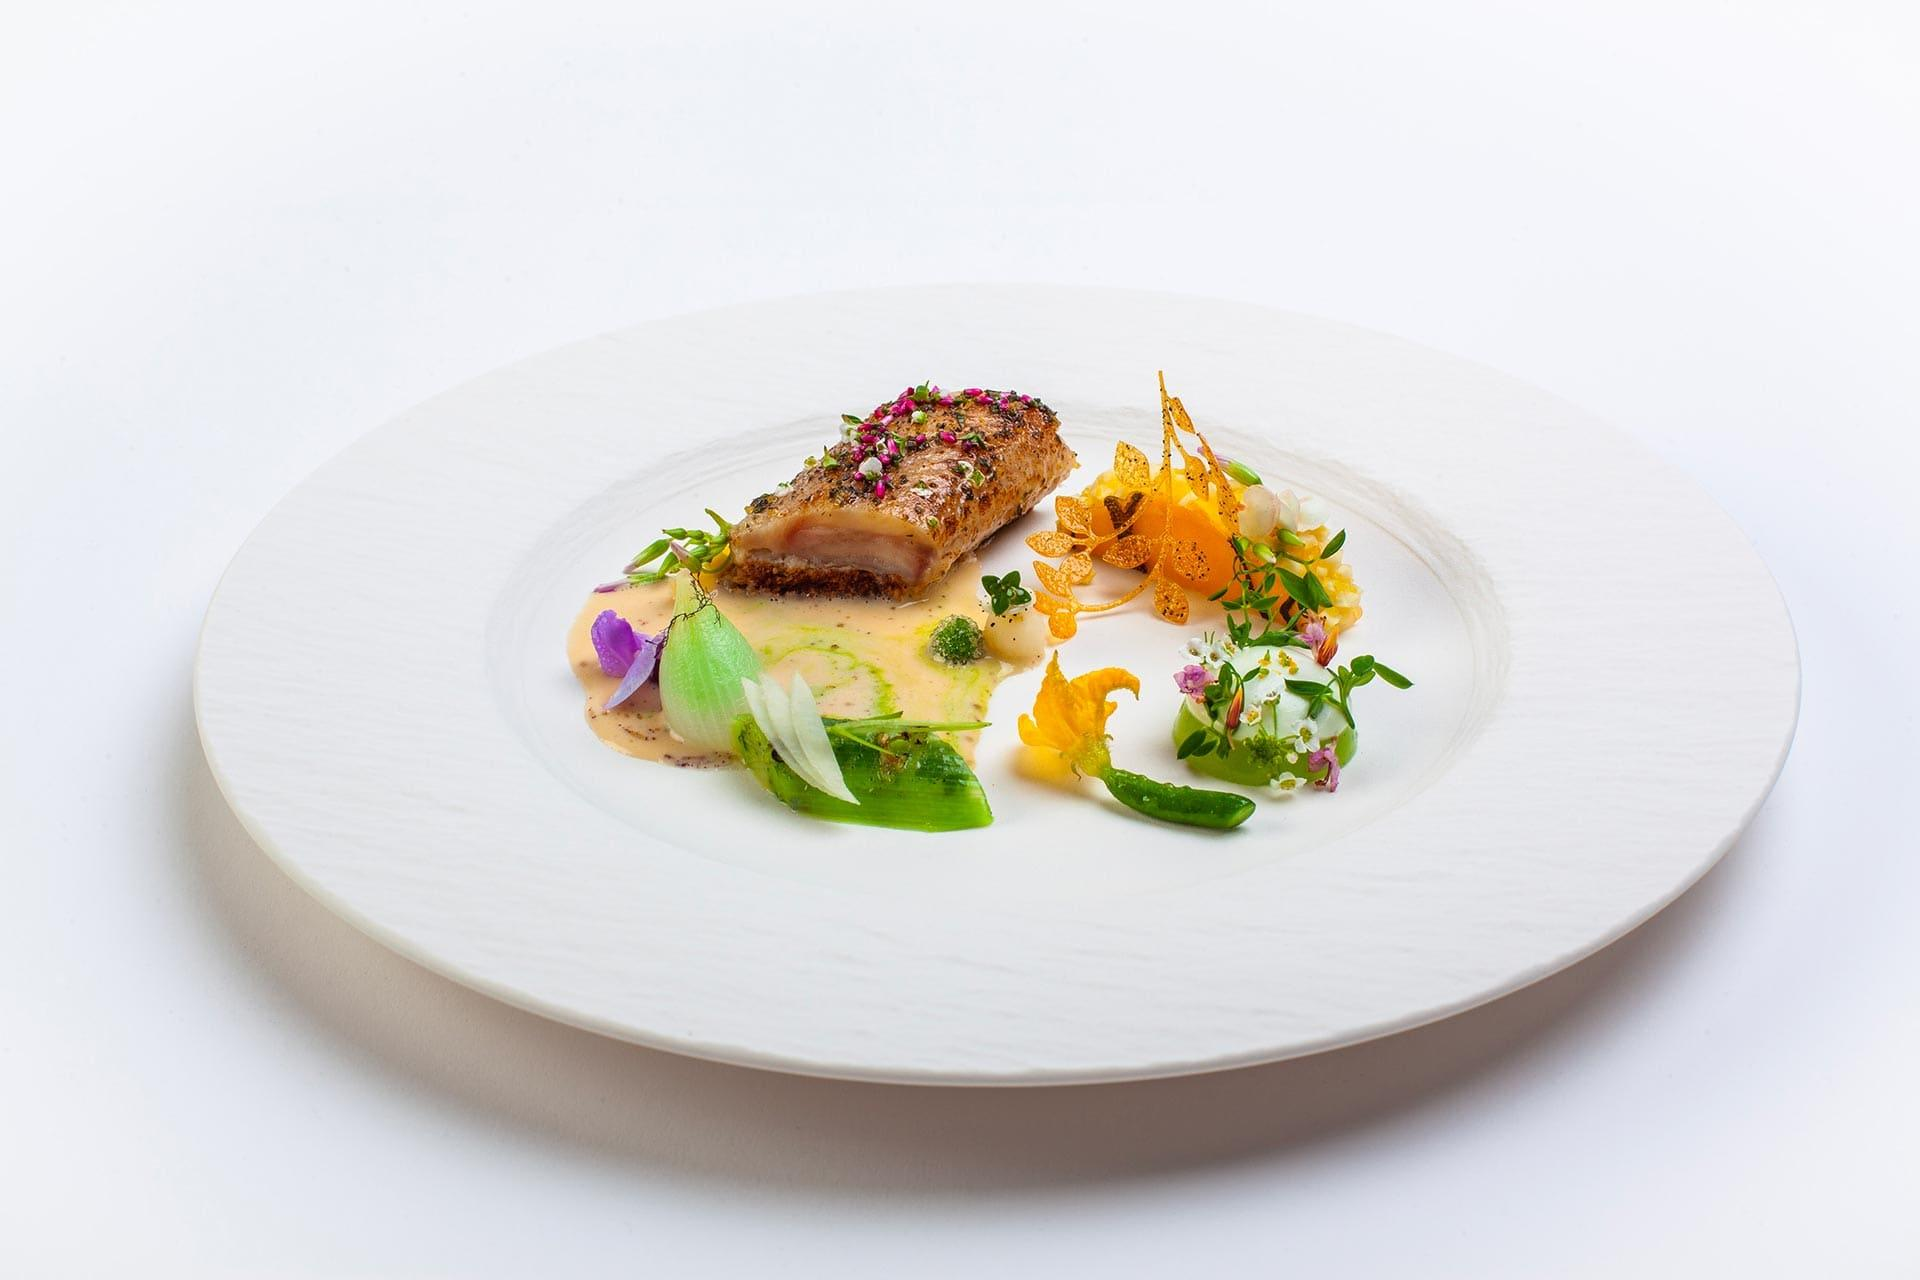 Bocuse d'Or Europe 2020 dishes